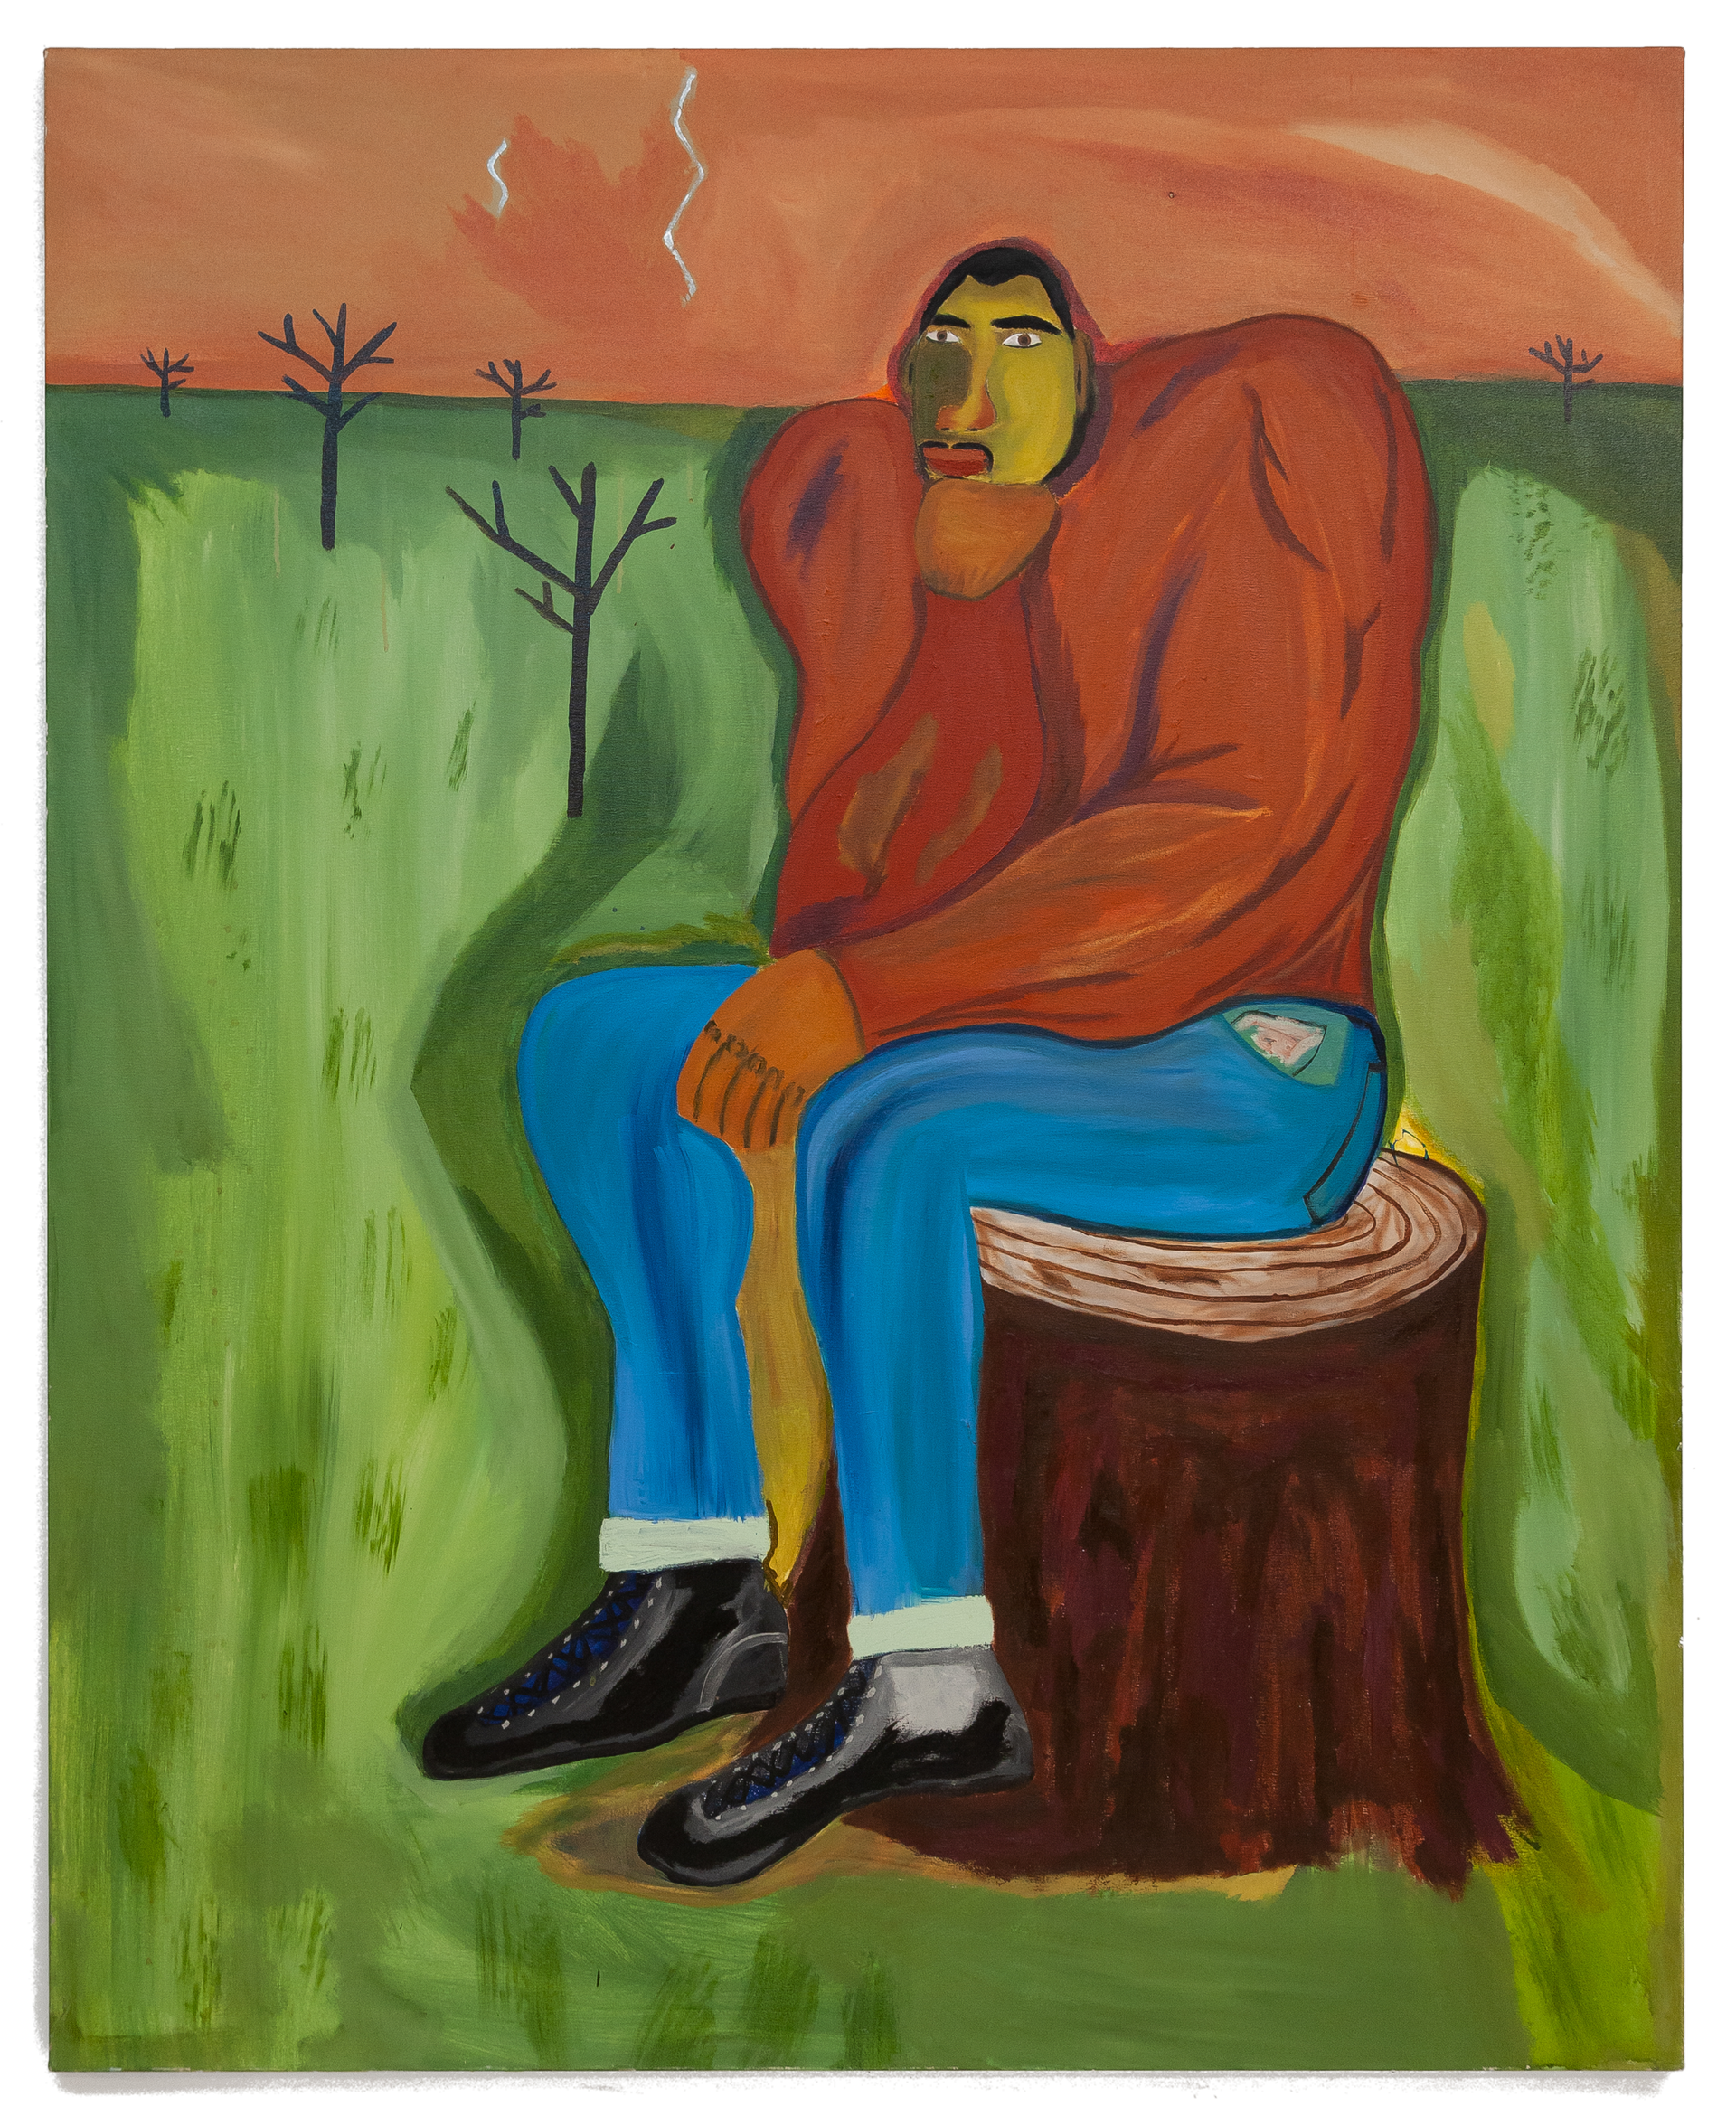 The Ponderer Oil and acrylic on canvas 48 x 60 Inches